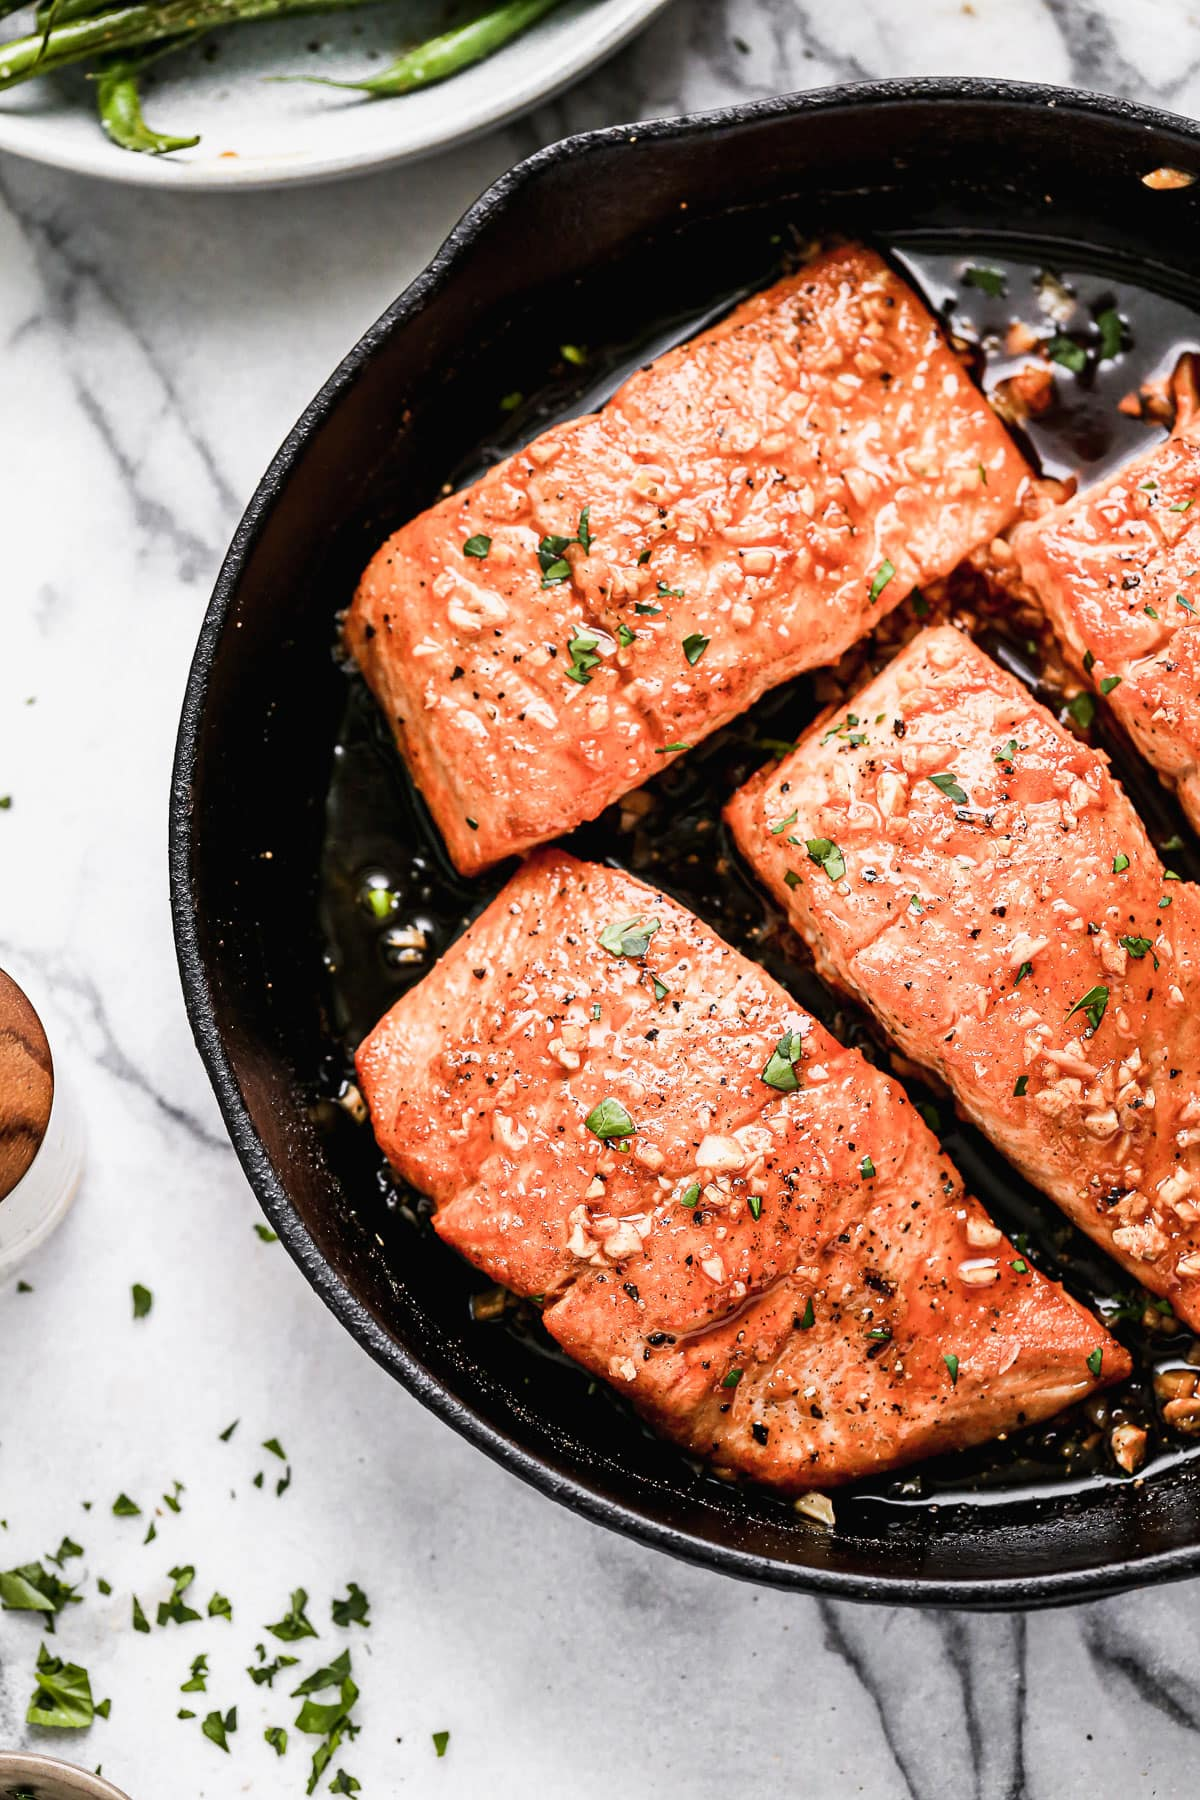 Four fillets of easy honey garlic salmon